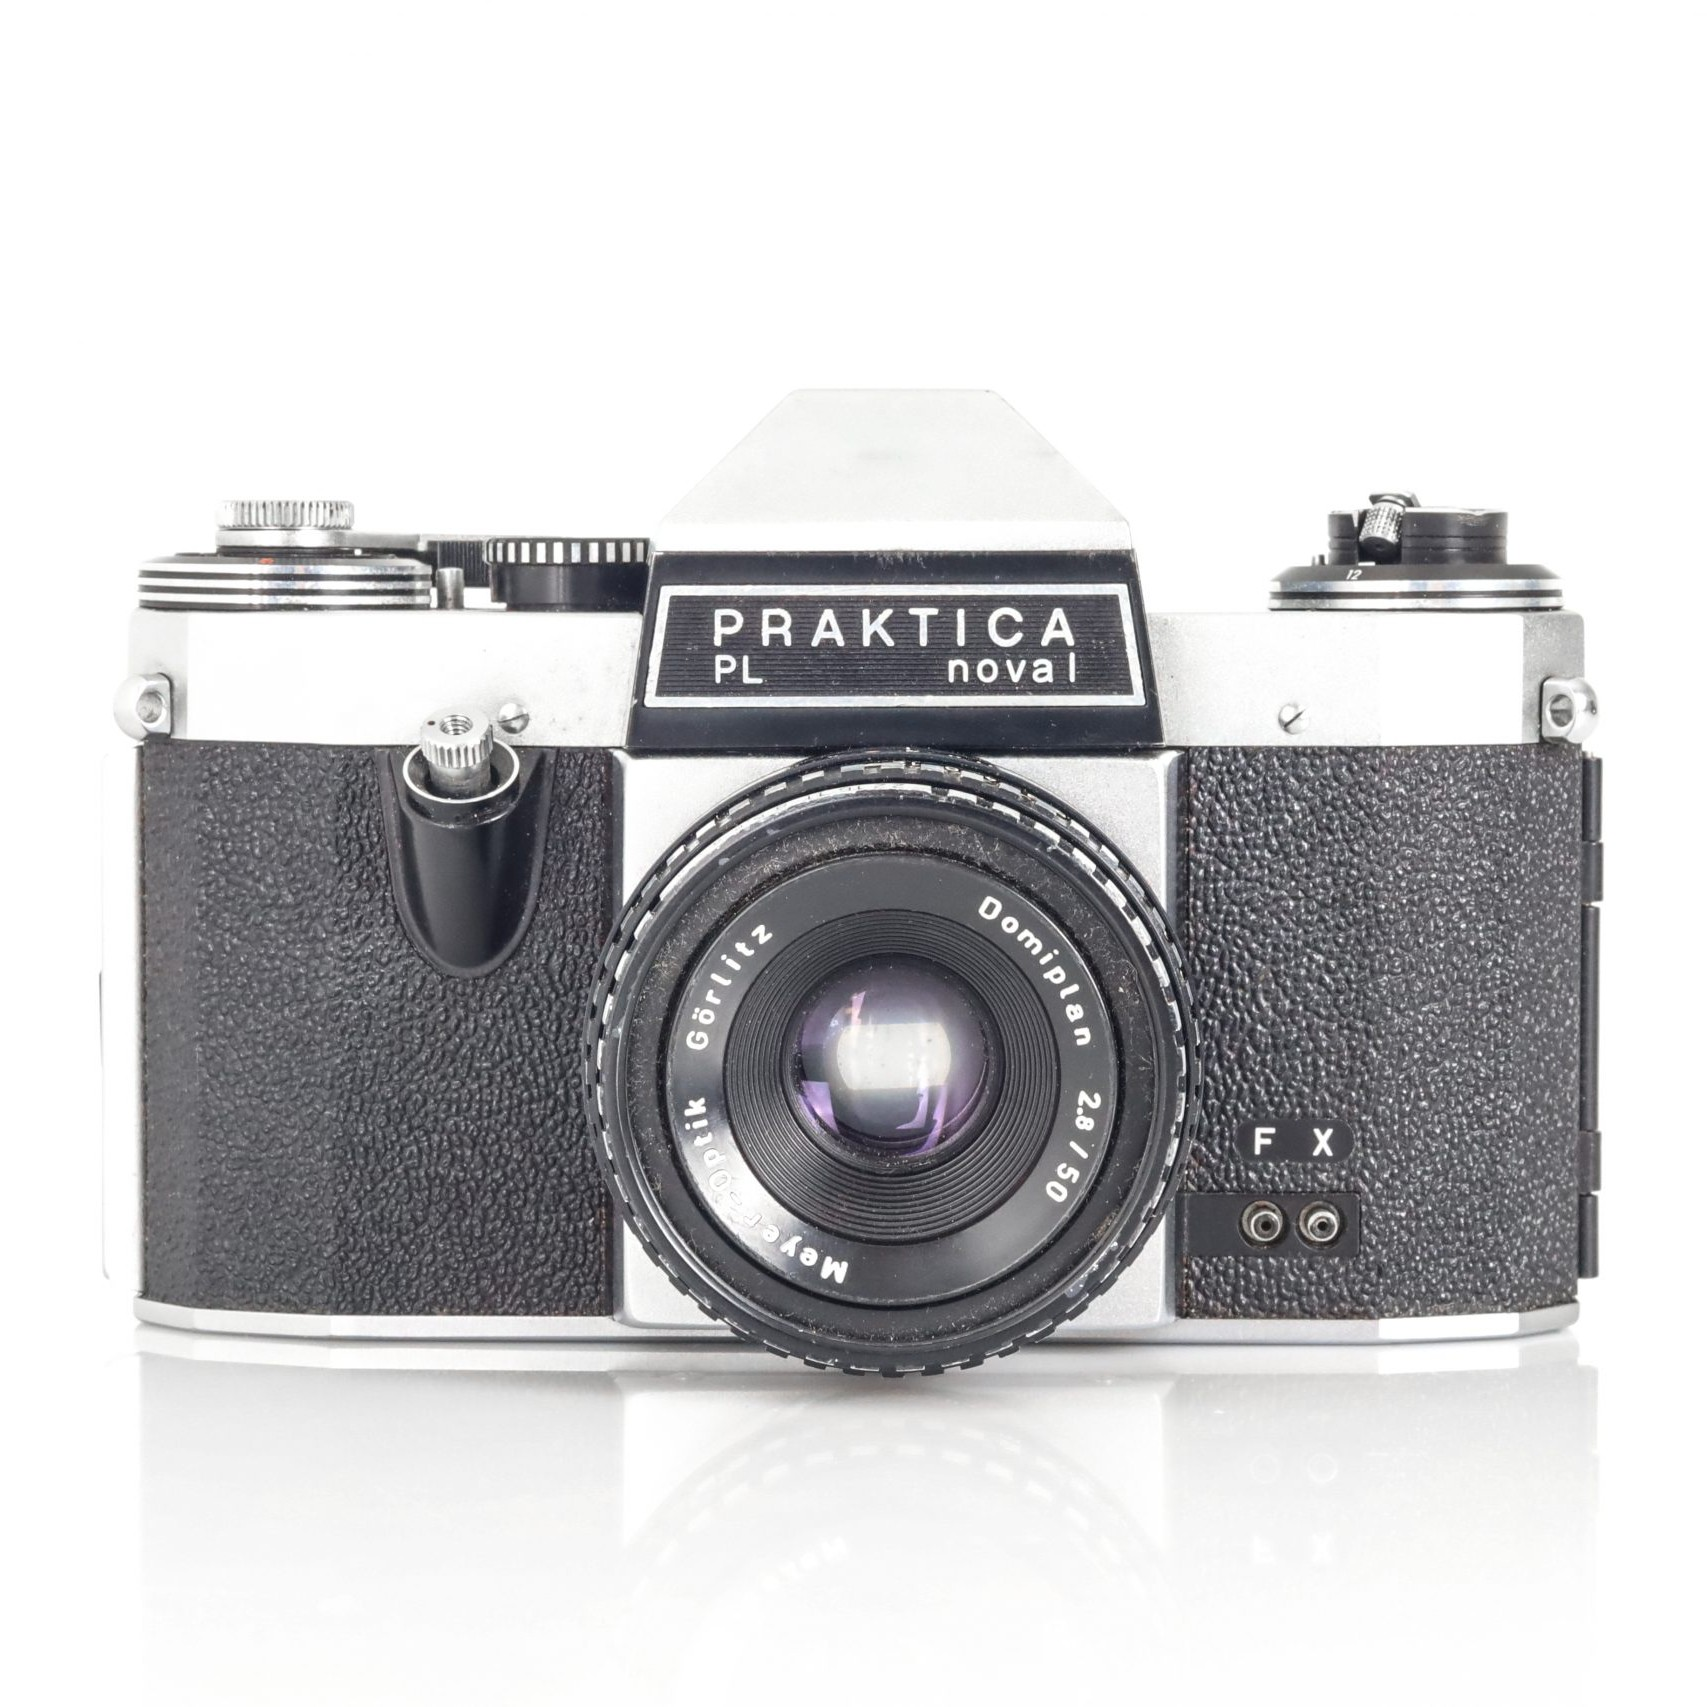 Brilliant 1970s Praktica PL Nova I 35mm Film Camera with Faulty Domiplan F2.8